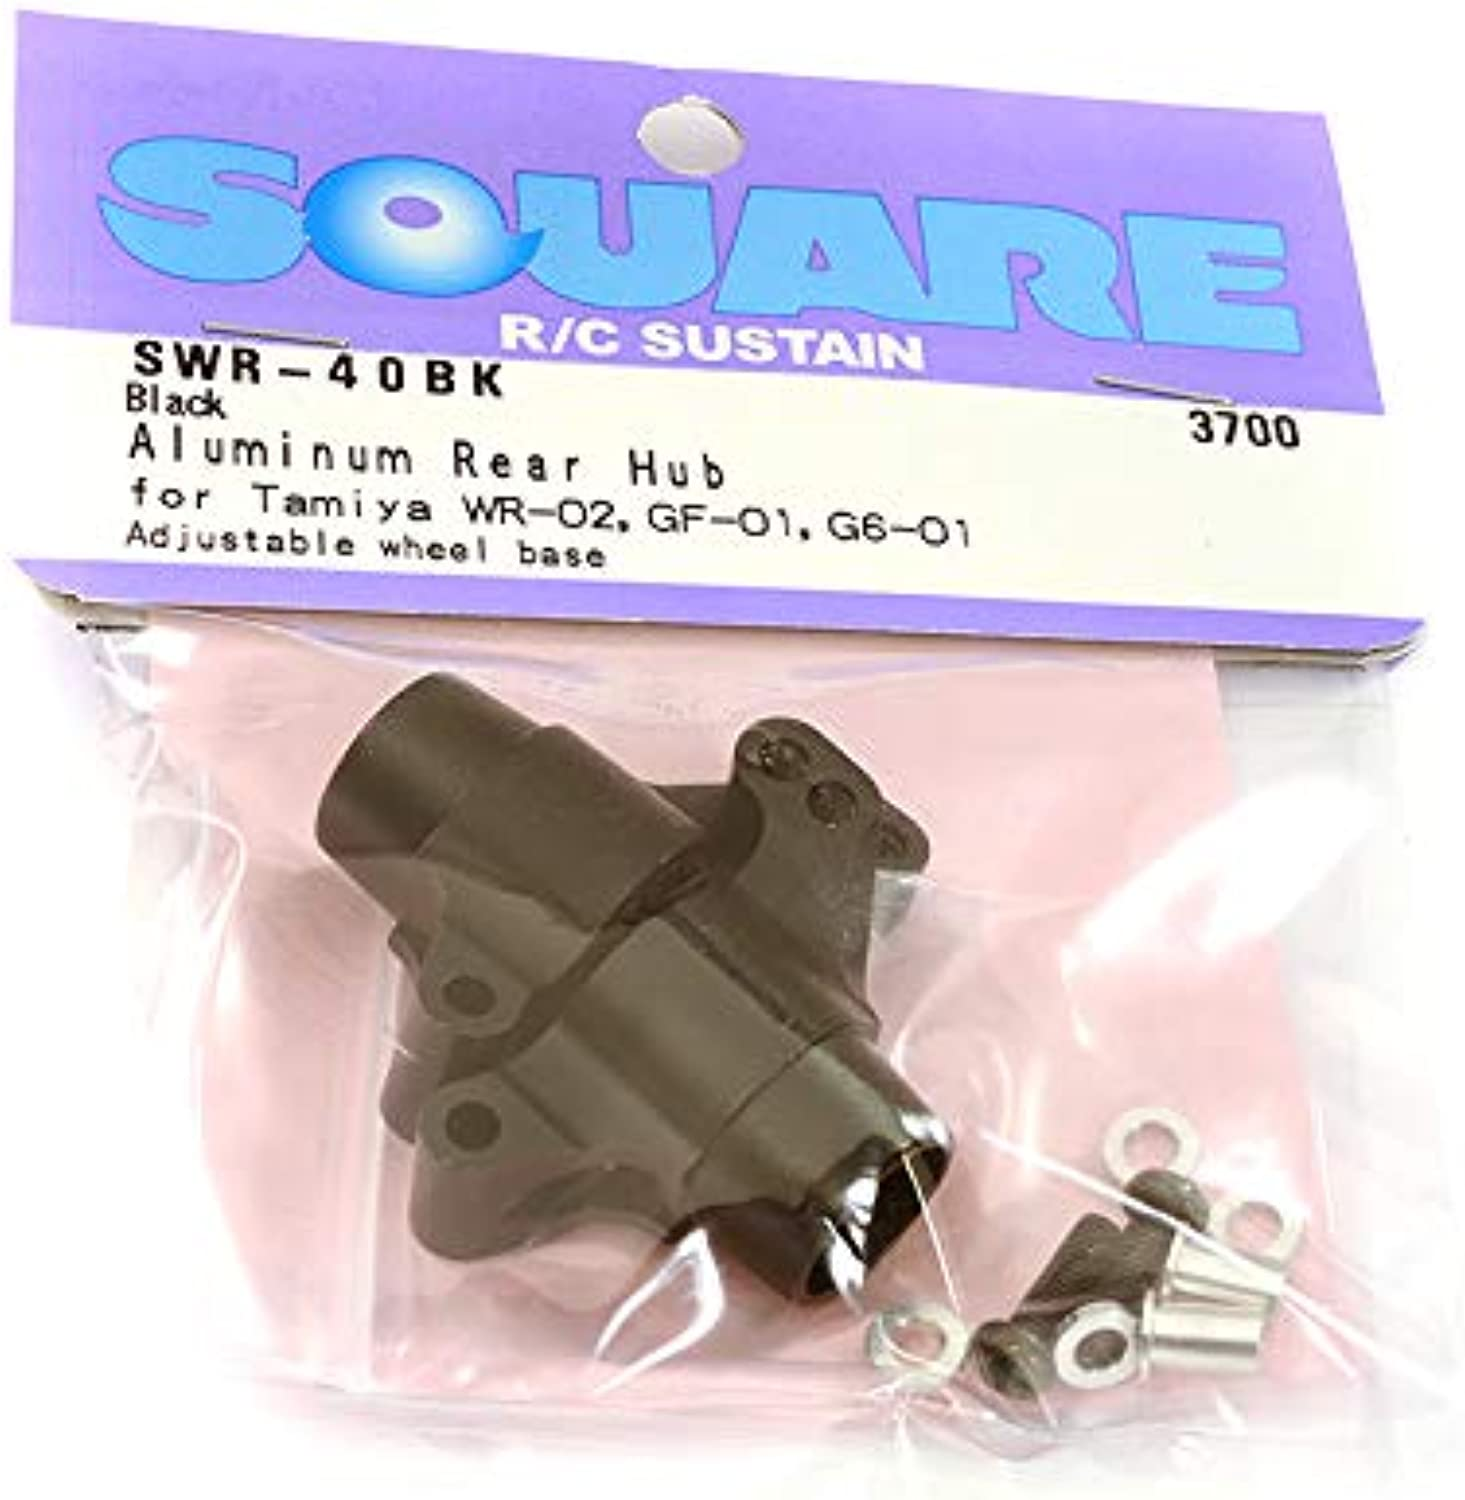 Square R C RC Model Hop-ups SQ-SWR-40BK Aluminum Rear Hub (for Tamiya GF-01, City Turbo and WR02) schwarz B07G2QPXBY  Guter Markt | Zürich